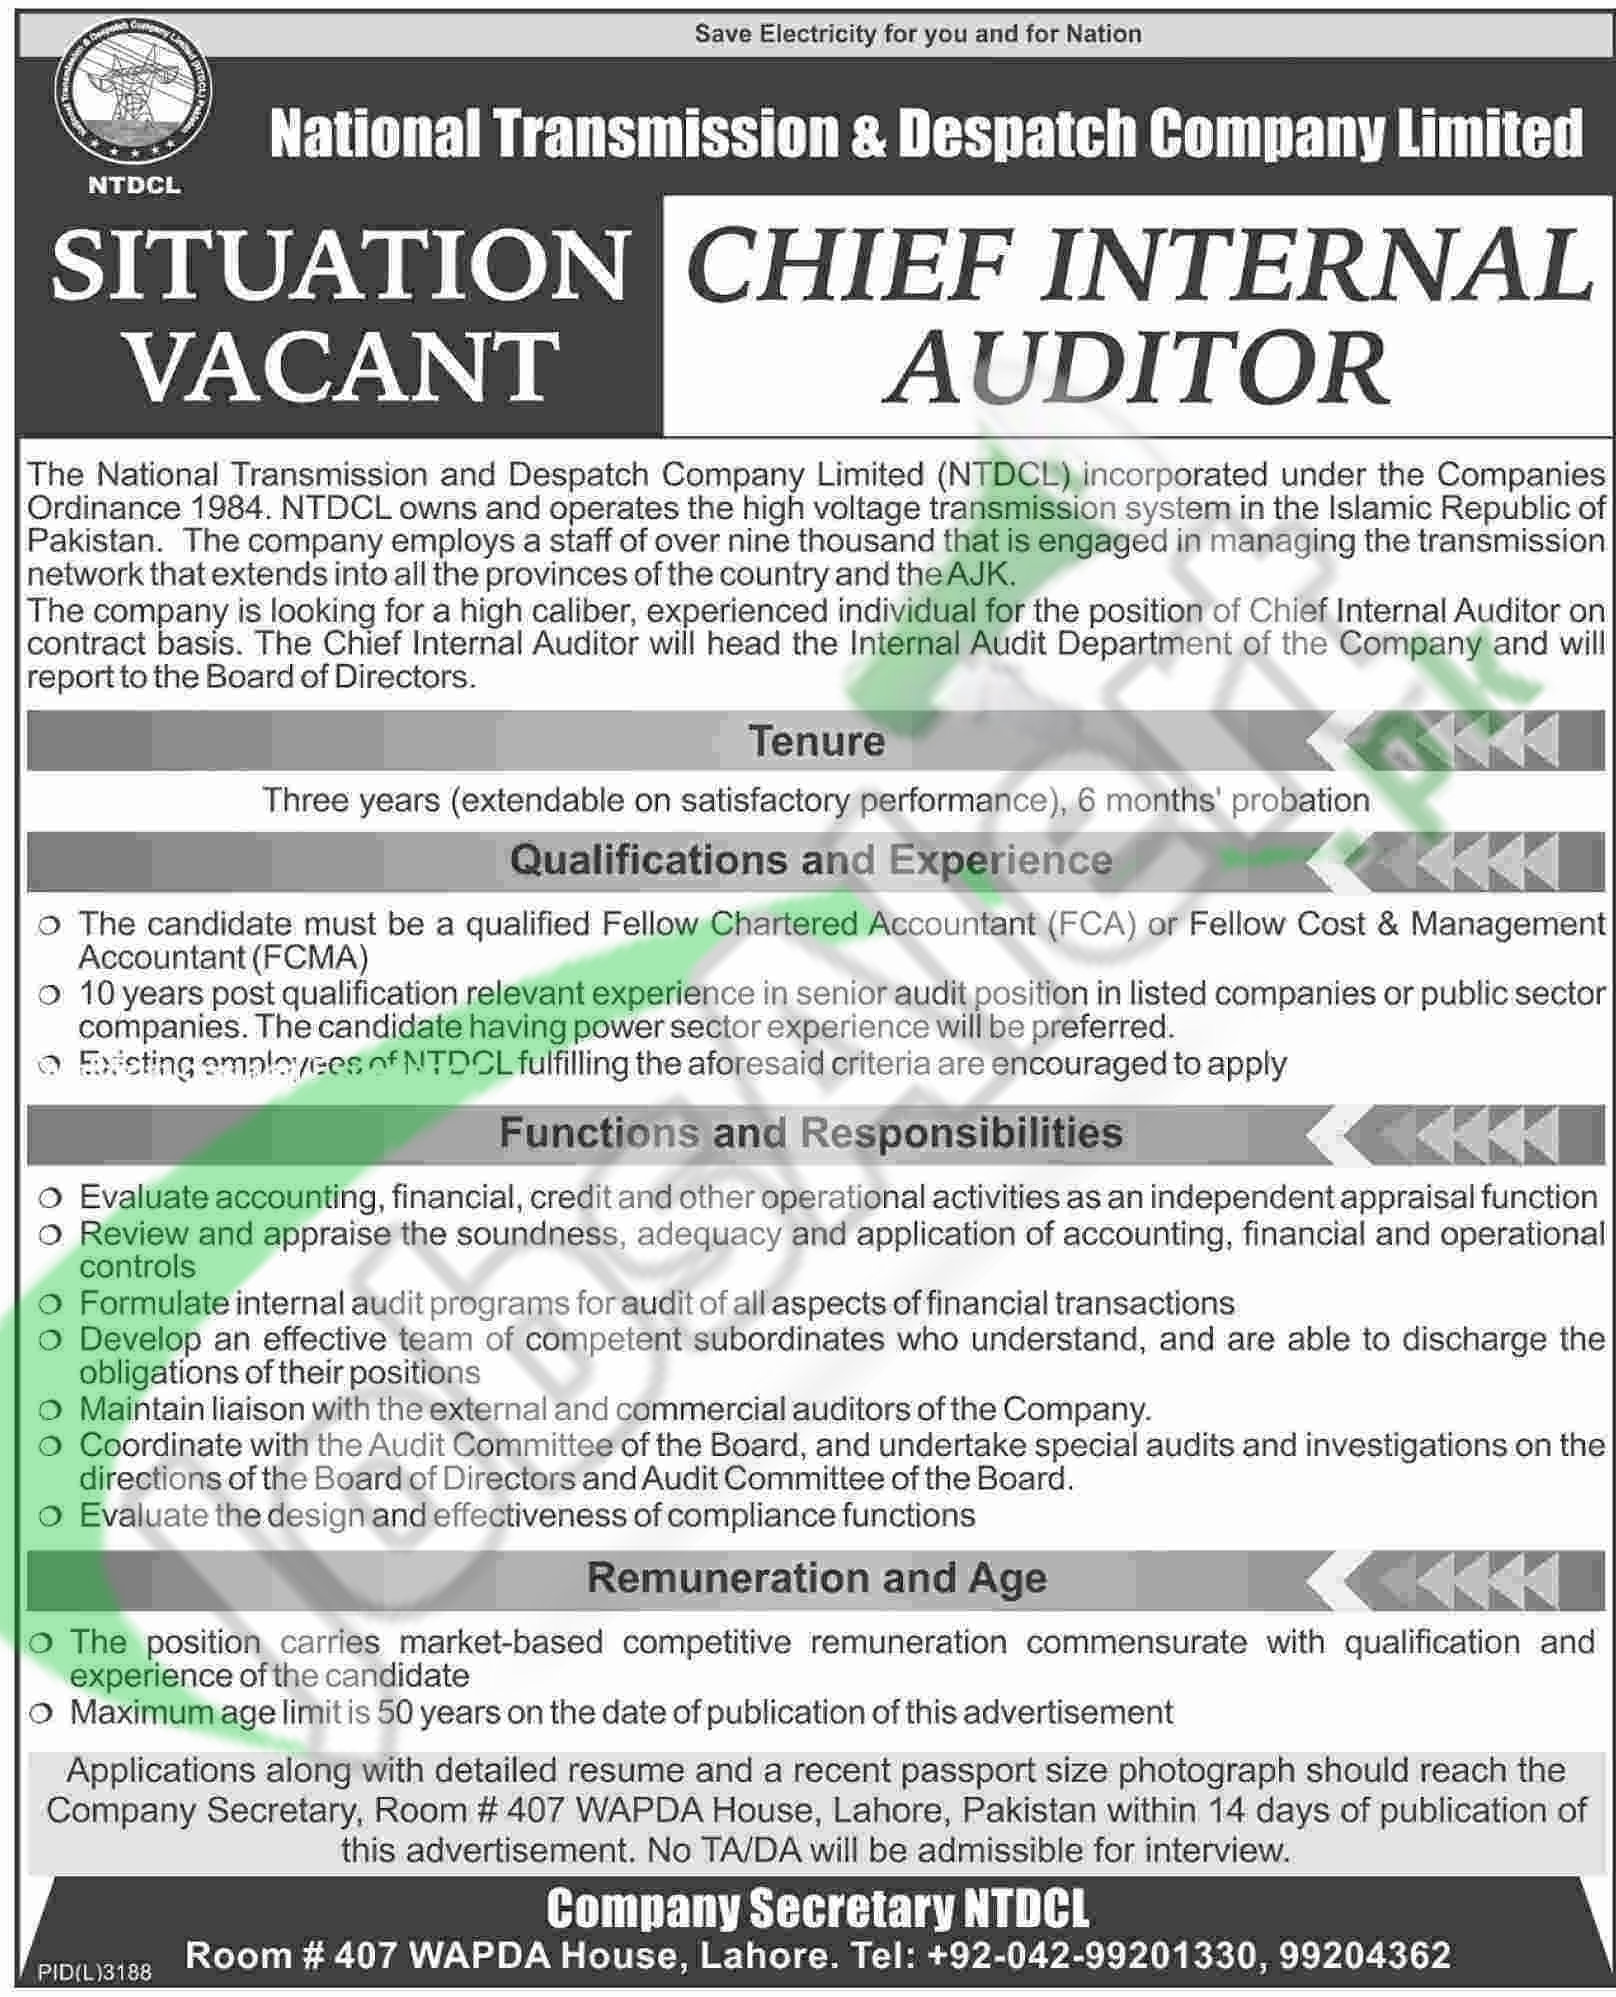 Career Offers for Chief Internal Auditor 2016 in NTDCL